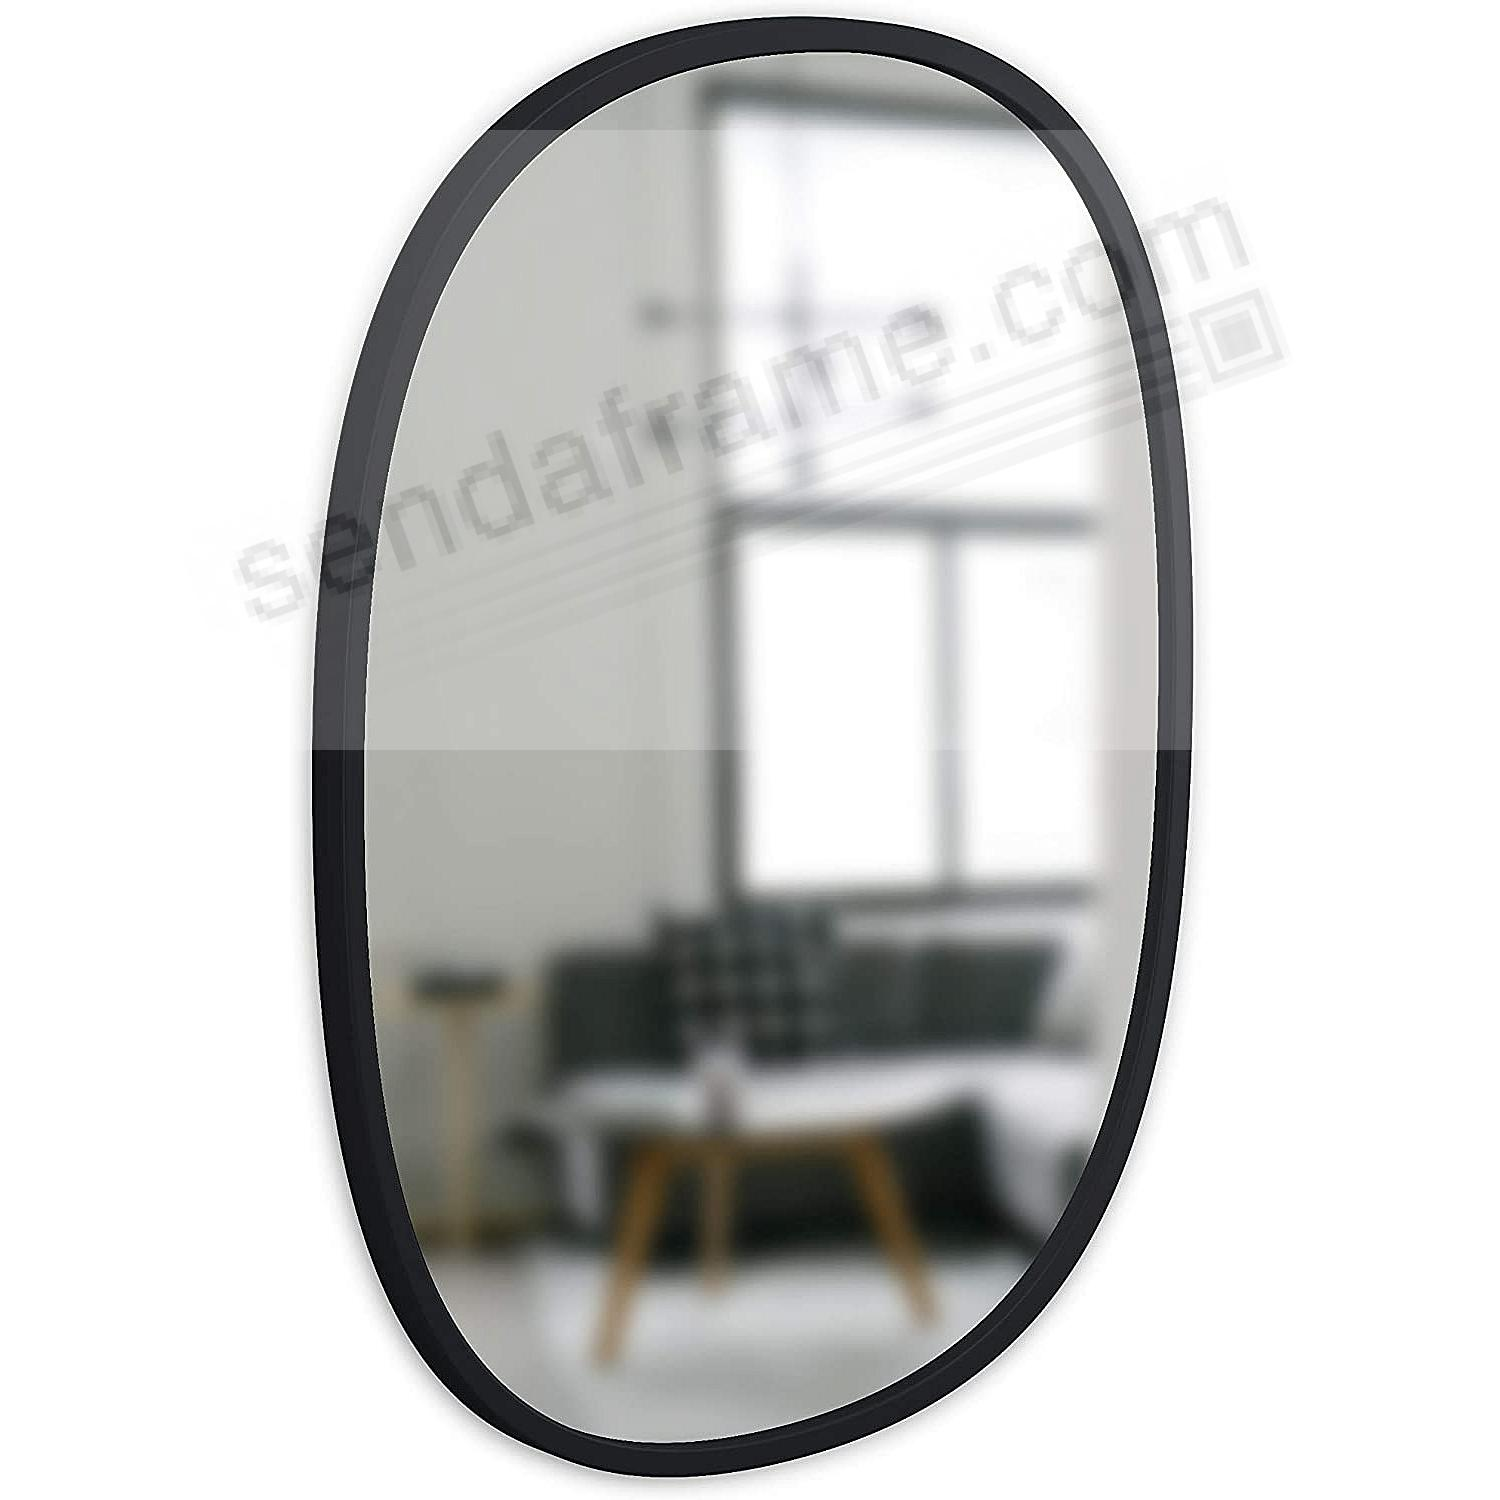 The HUB WALL MIRROR 24x18inch OVAL Black by Umbra®